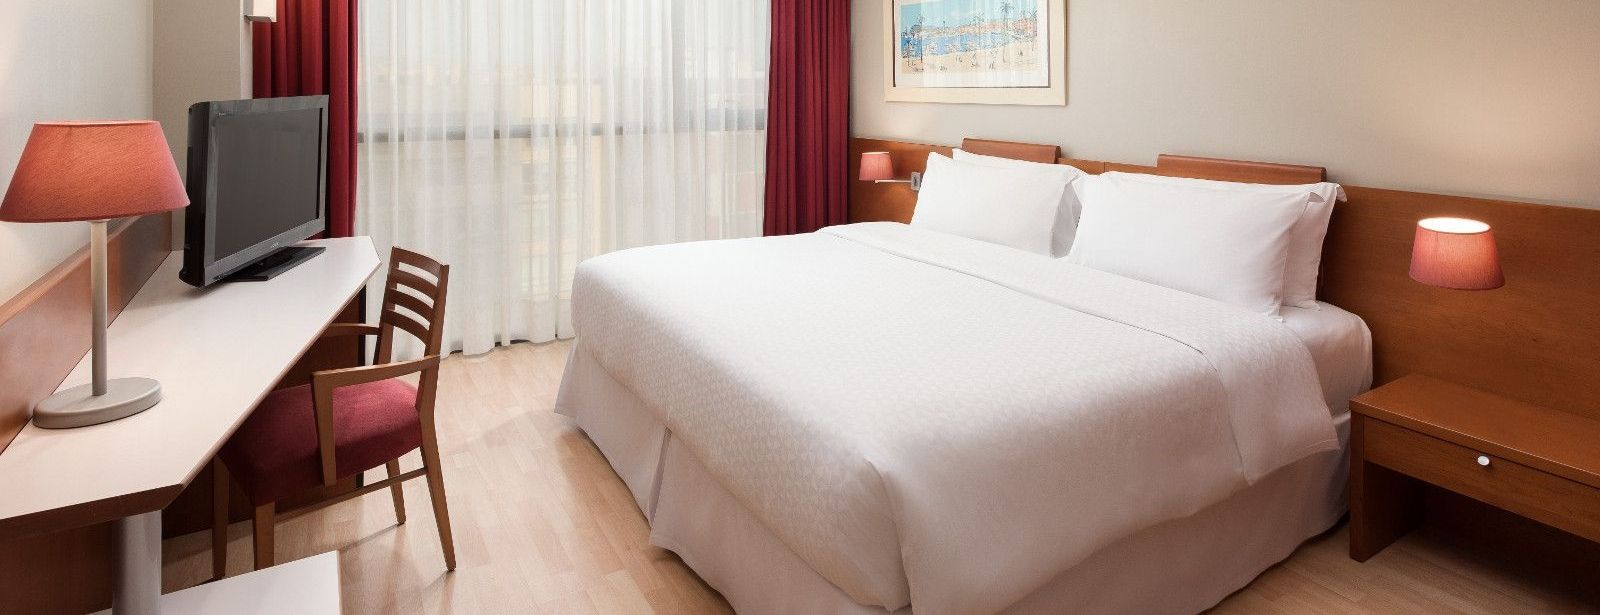 Habitación Classic | Four Points by Sheraton Barcelona Diagonal